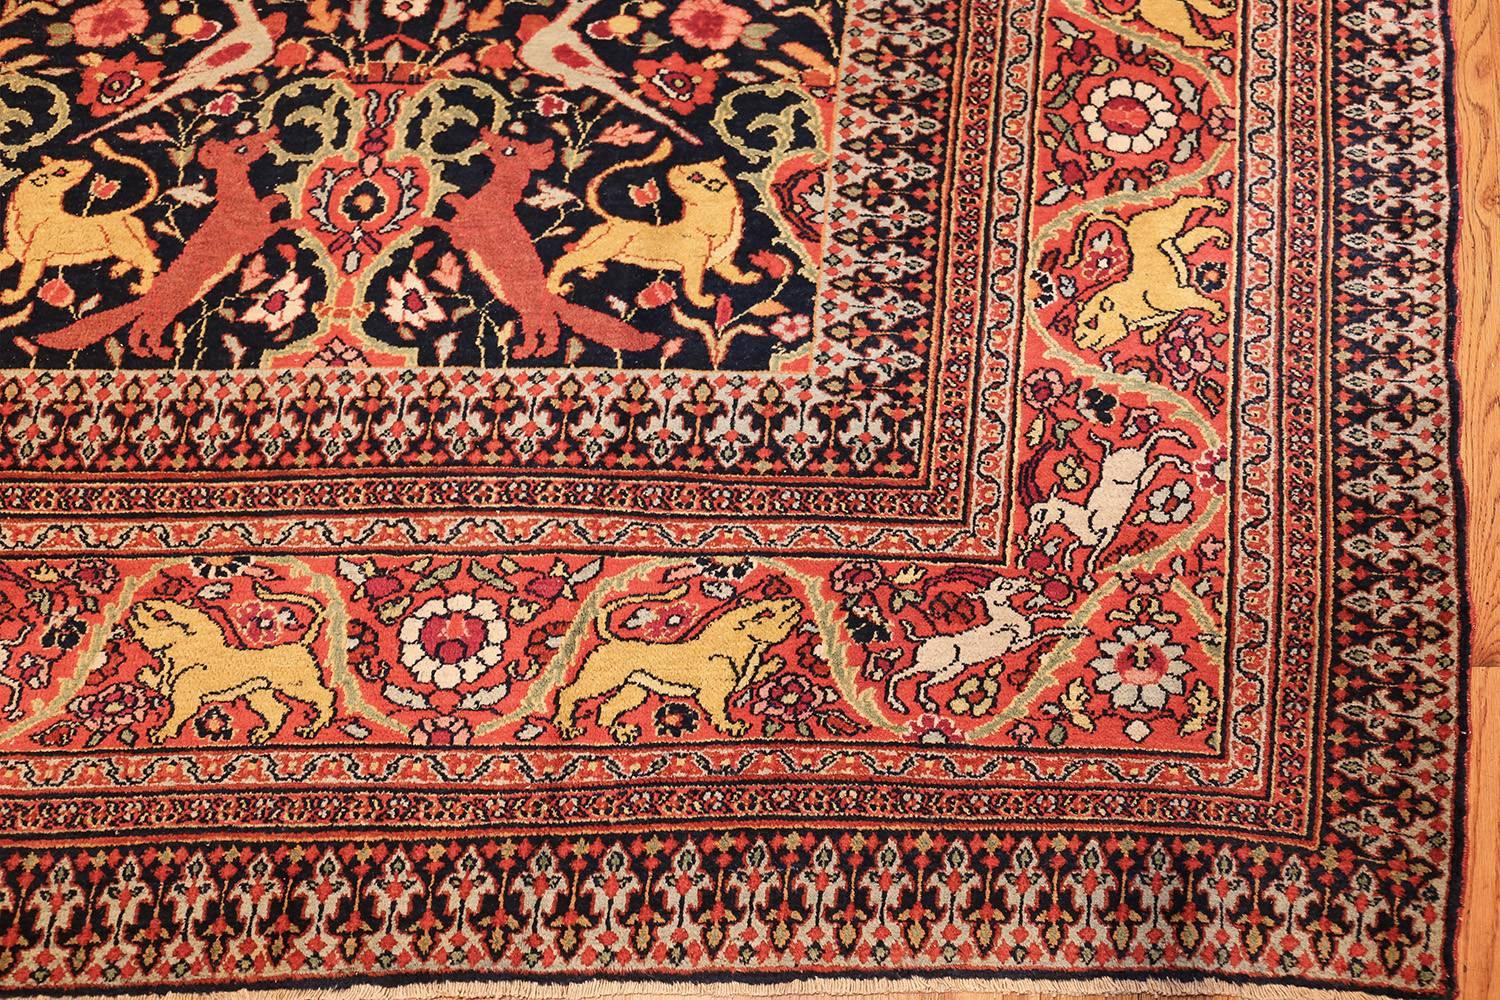 Persian rugs Dining Room Here Is Truly Impressive Antique Oriental Rug Persian Carpet Of Khorassan Design Claremont Rug Company Animal Motif Antique Persian Khorassan Rug For Sale At 1stdibs